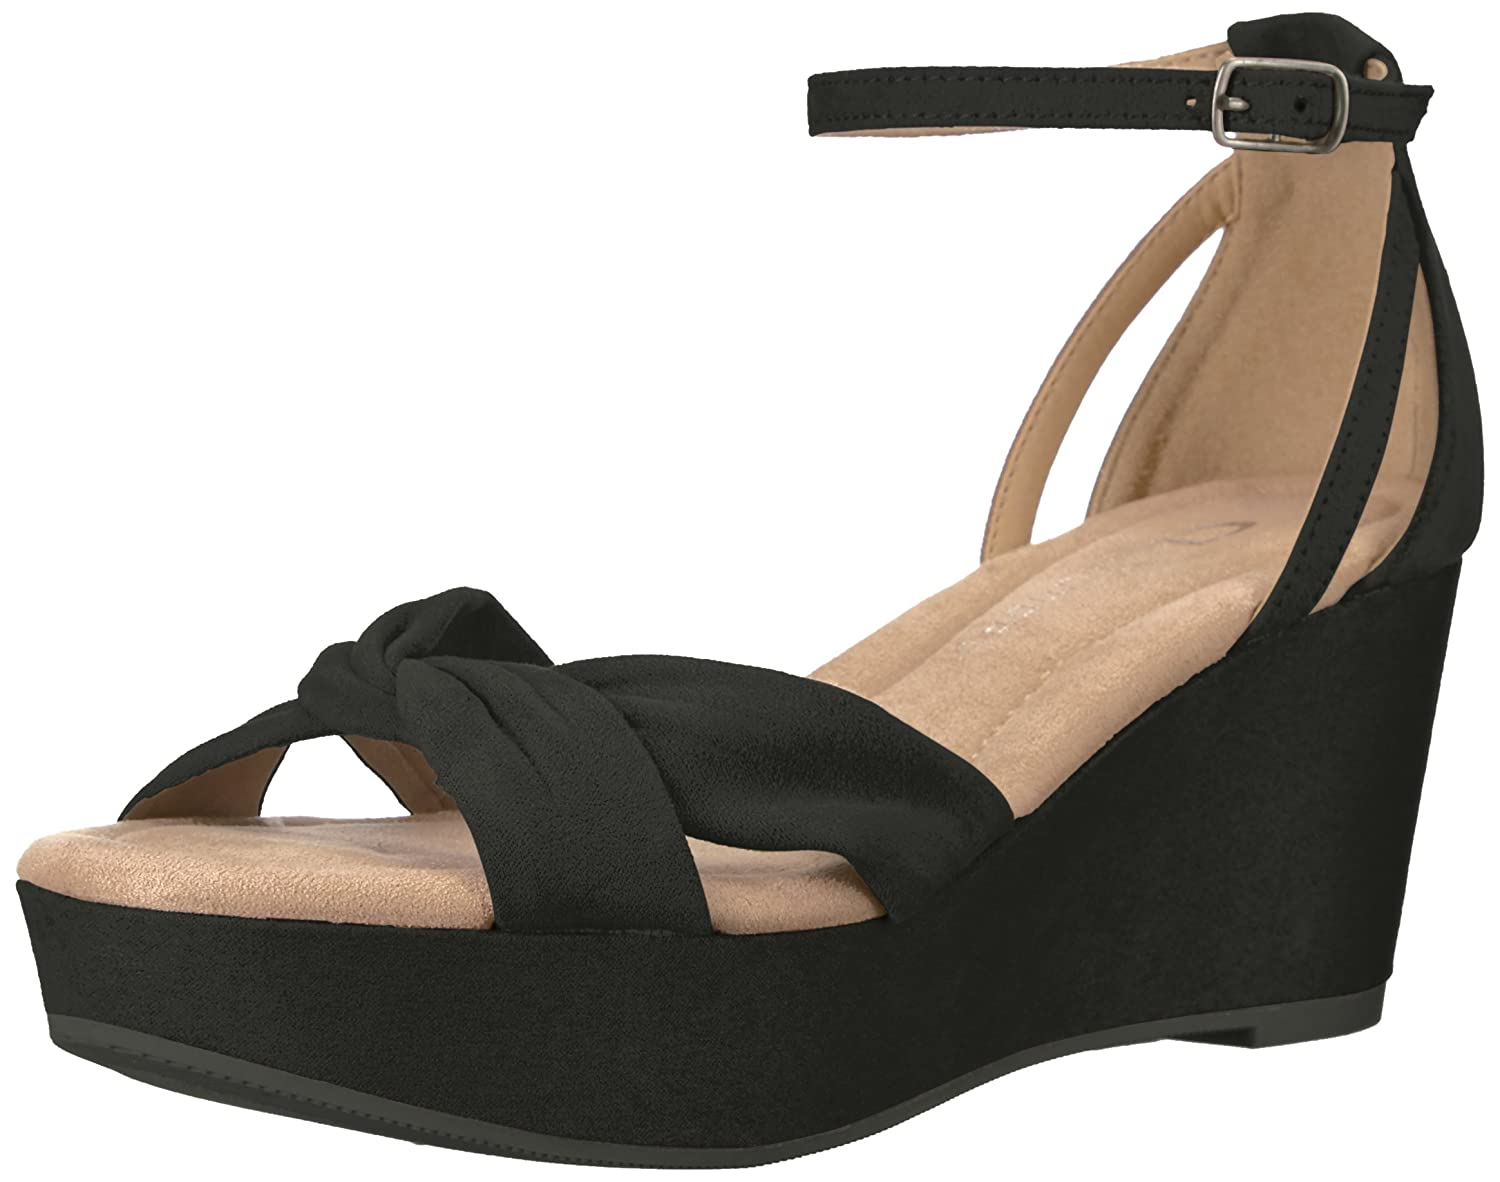 c65e89224ba CL by Chinese Laundry Women s Devin Wedge Sandal